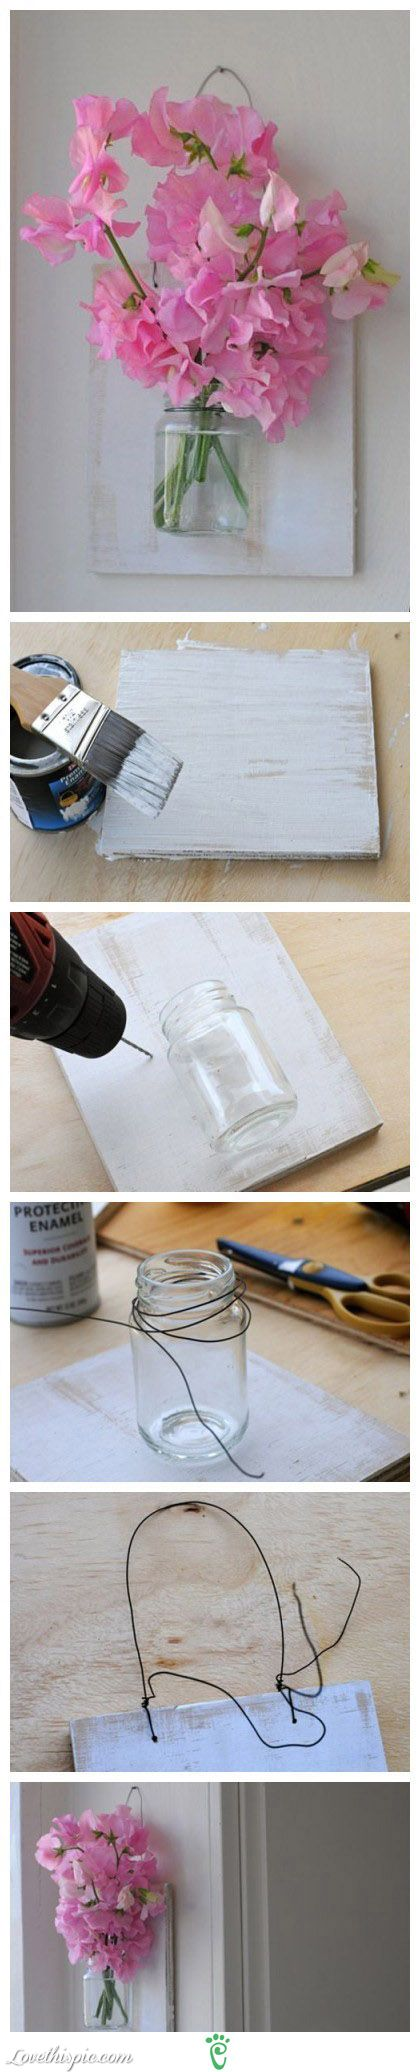 DIY Don't be a Wall Flower but MAKE ONE! A Lovely Wall Vase on a piece of Old Wood or a piece of (new) Canvas (with a half PET Bottle)! So Easy and if you like....... you could make a background first...with paint or decoupage :-D